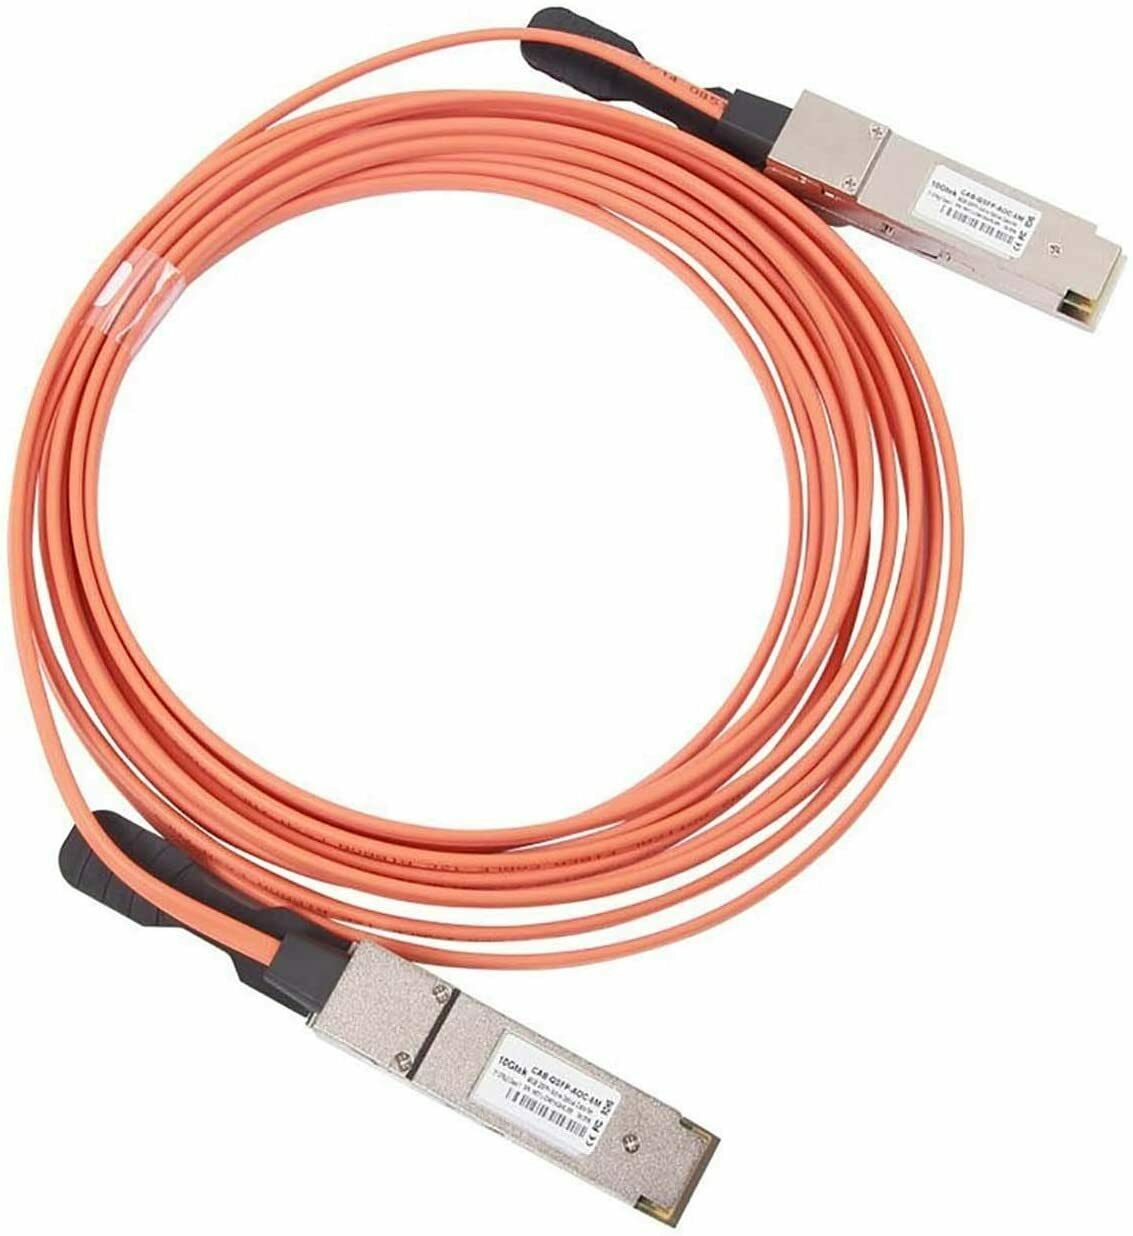 40G QSFP+ 40GBase-AOC Ethernet Direct-Attach Active Optical Cable QDR For Cisco and more,10 Meter